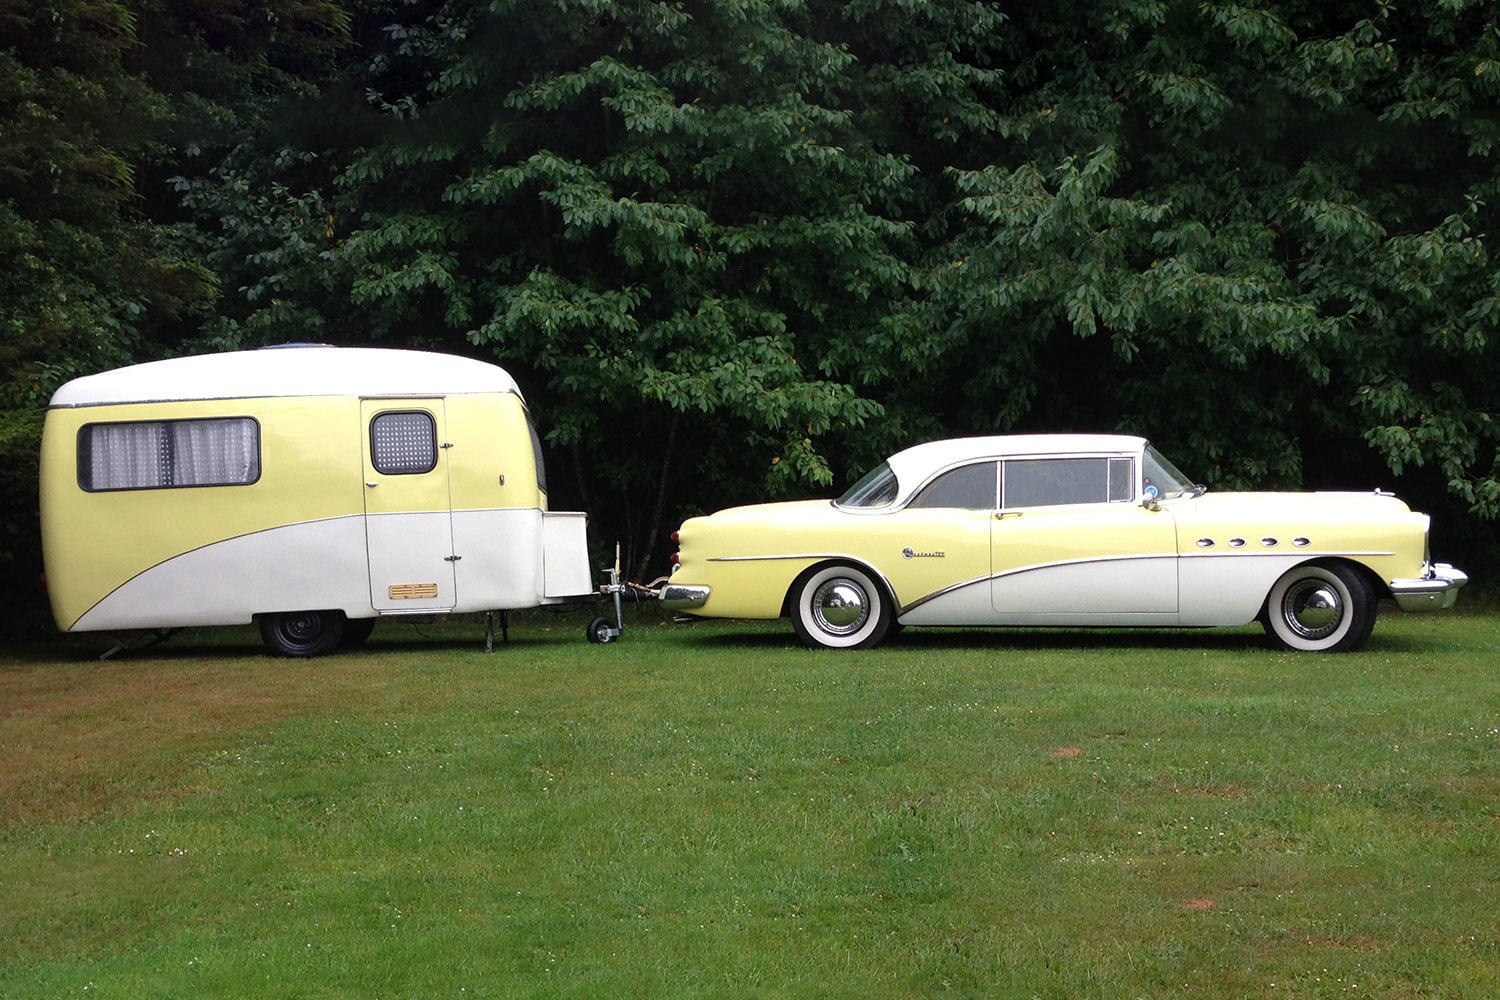 Vintage Travel Trailers Are Making a Comeback – Redefining the RV ...